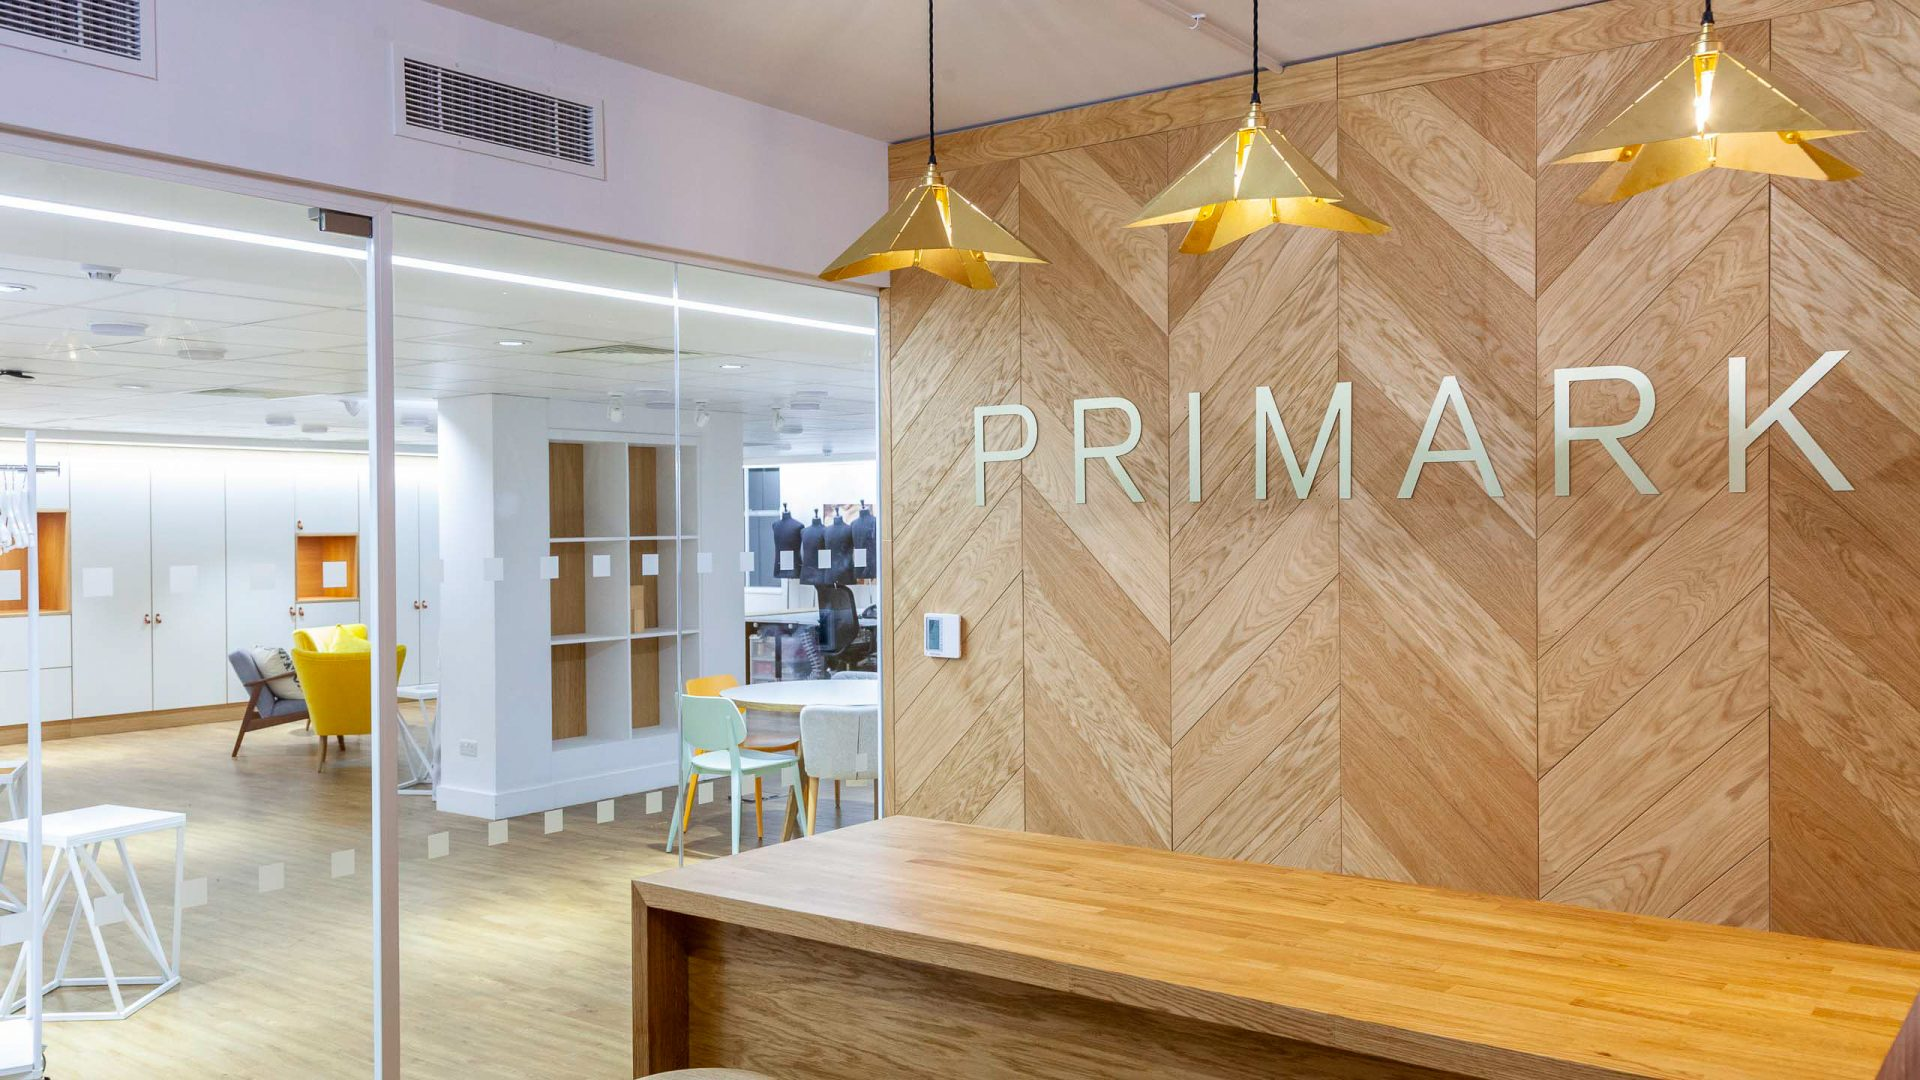 Reception area for Primark office design showing three splice pendant lights by interior designers, Liqui Group